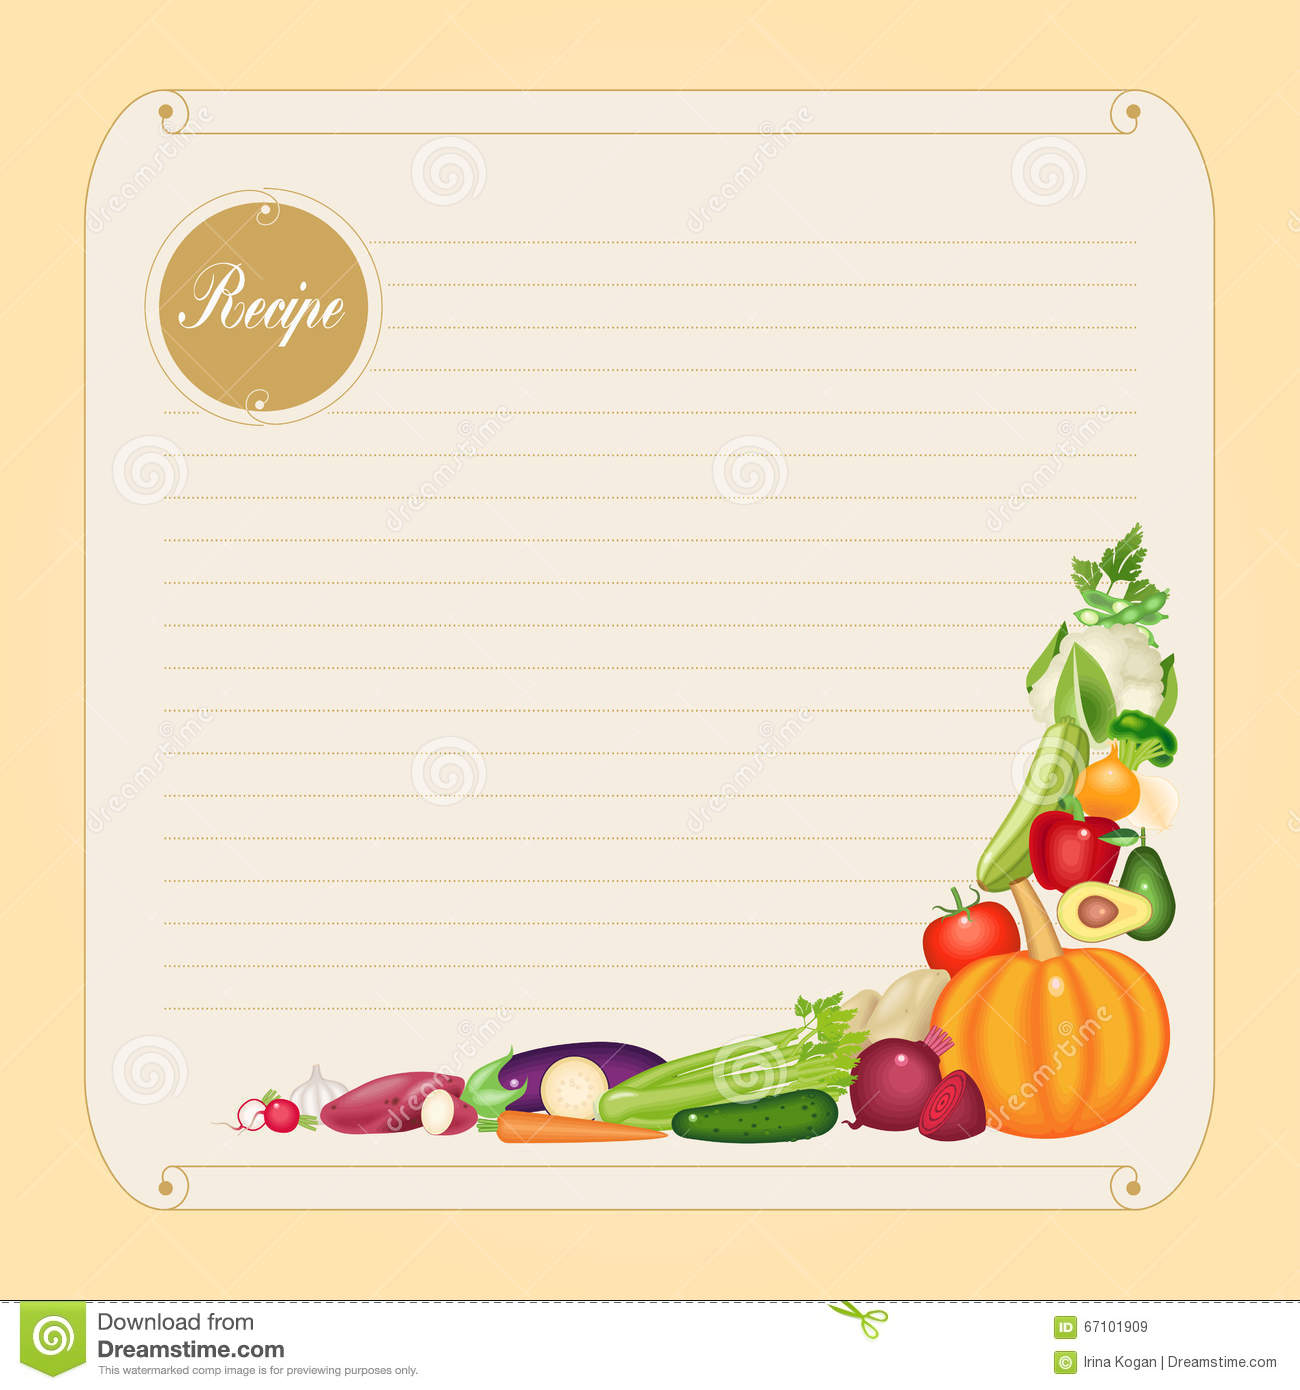 Blank Recipe Card Template In Vector Format Stock Vector - Image ...